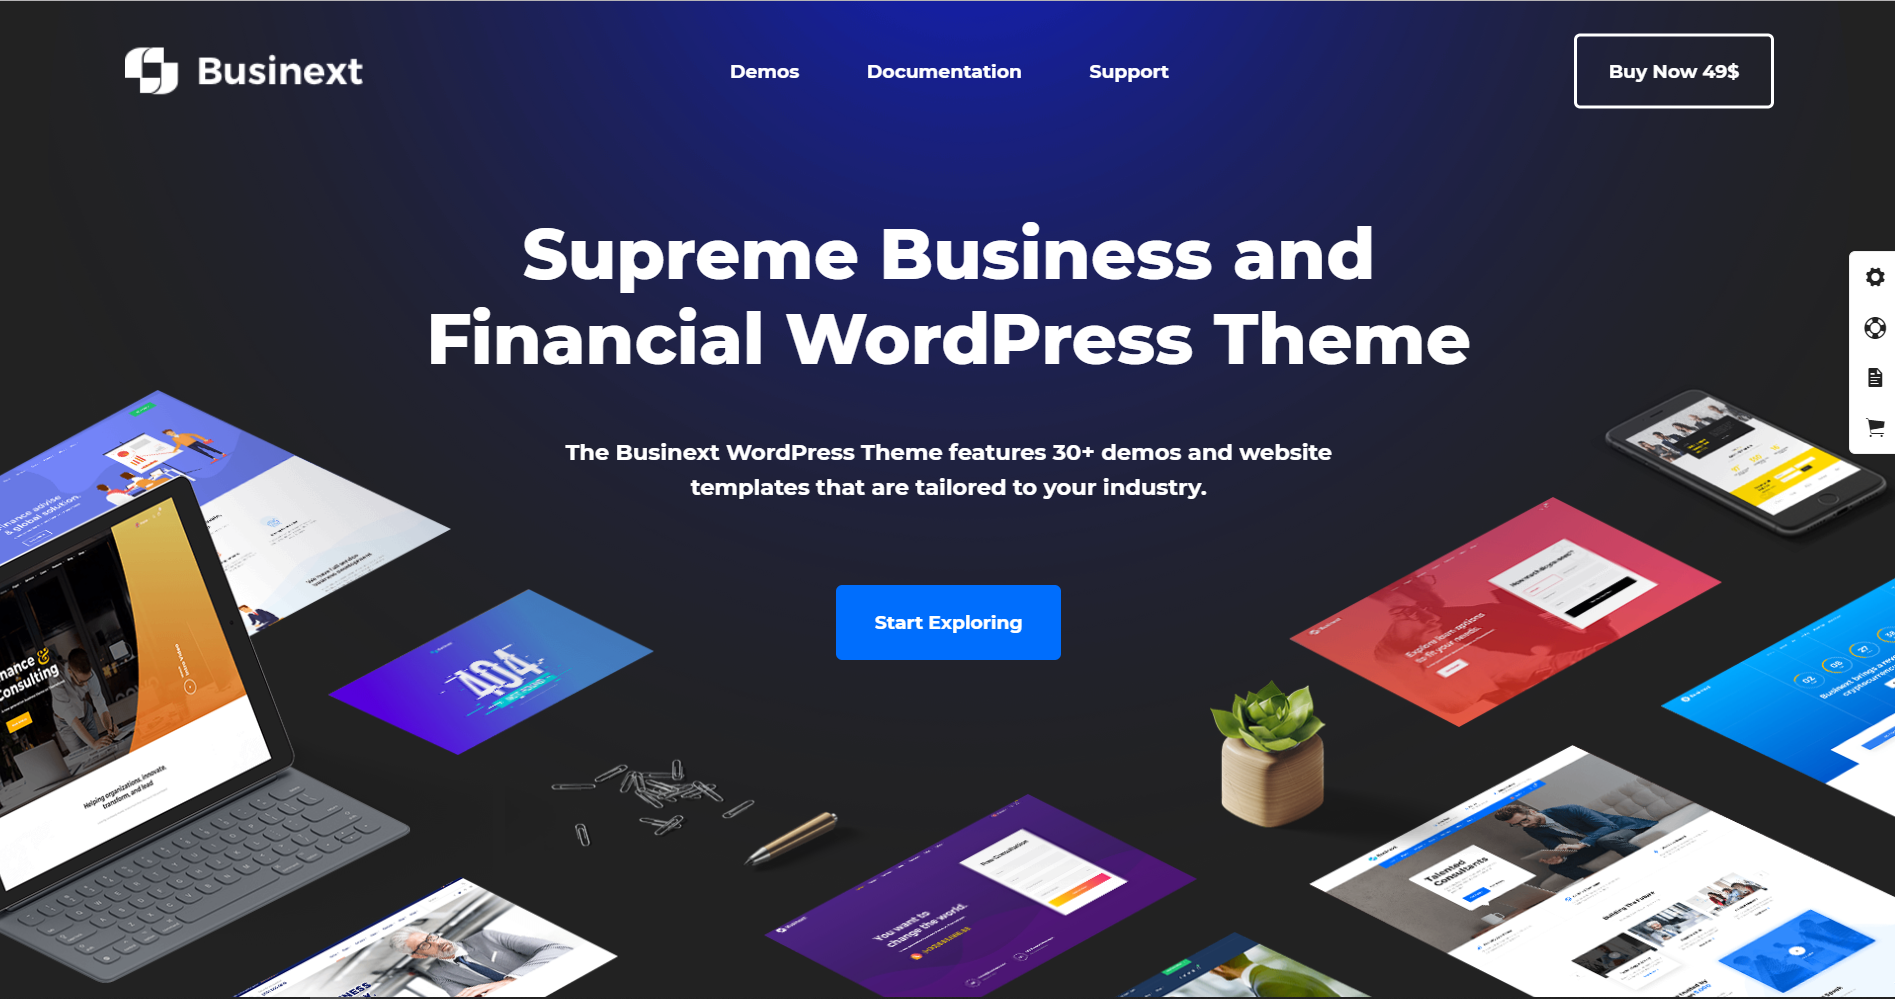 35. Businext - Supreme Business and Financial Institutions